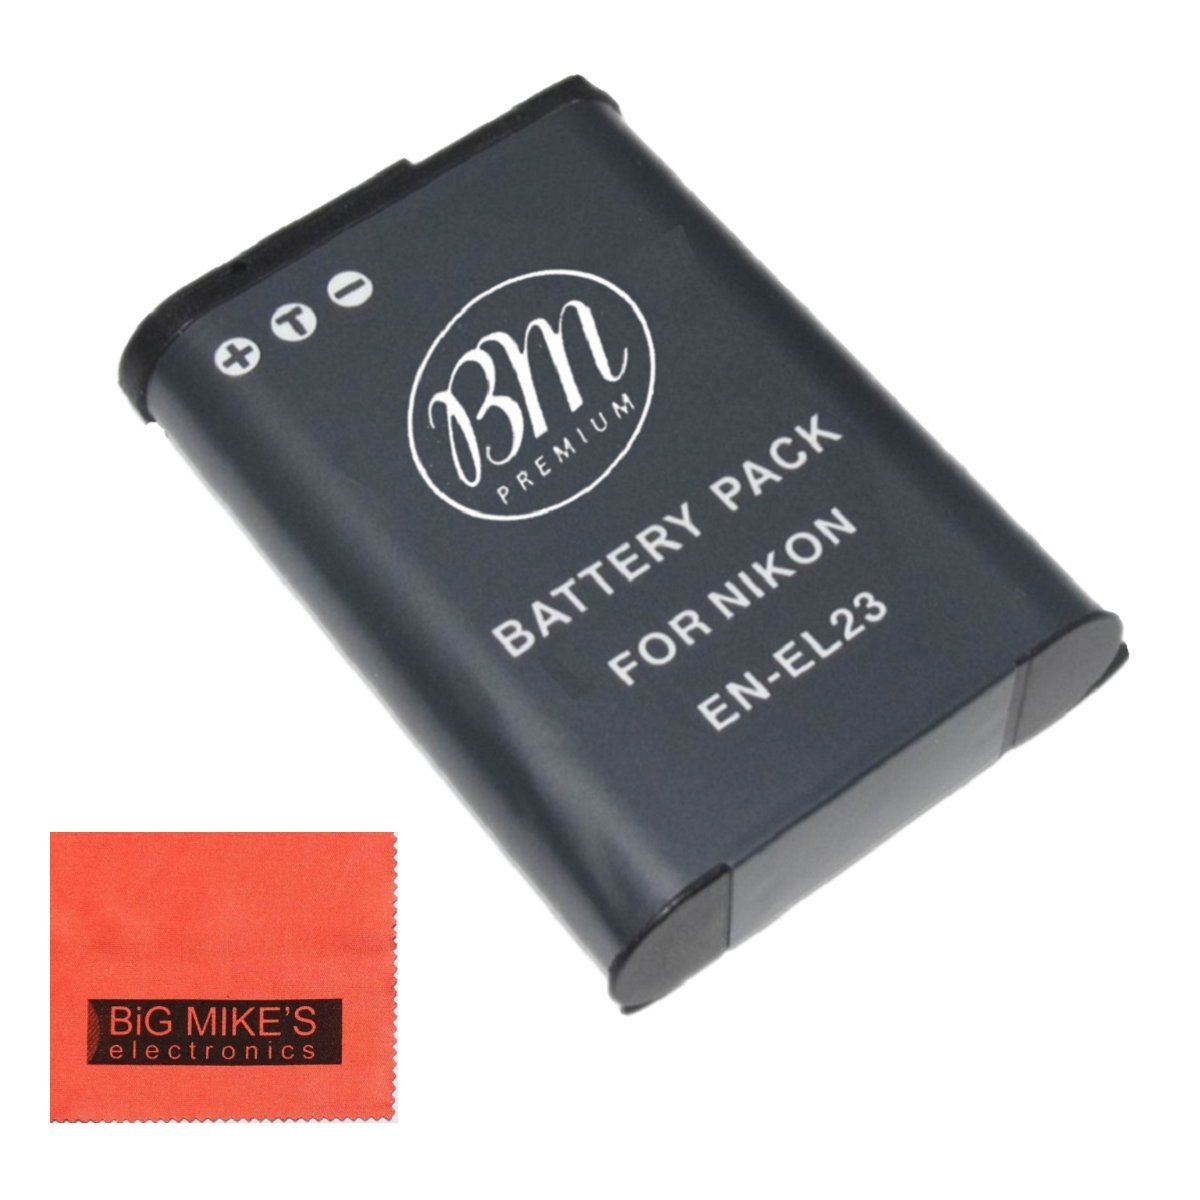 BM Premium EN-EL23 Battery for Nikon Coolpix B700, P600, P610, P900, S810c Digital Camera